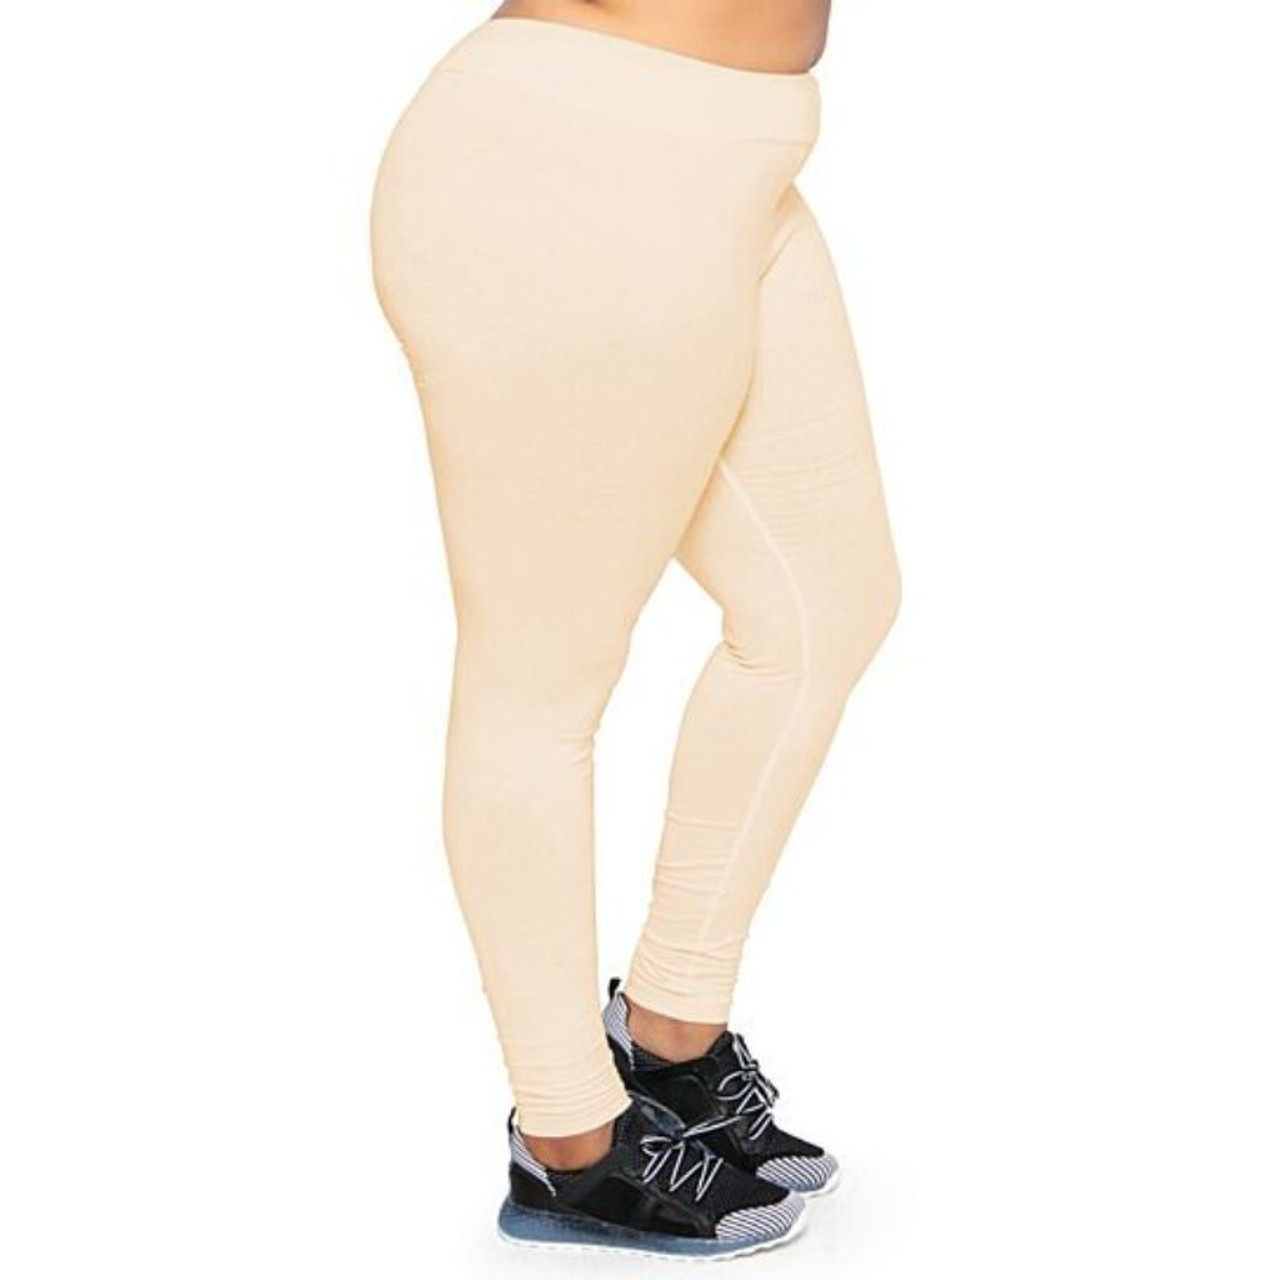 Plus Size Women's Ultra-Soft Stretchy Solid Yoga Leggings - 4 Pack